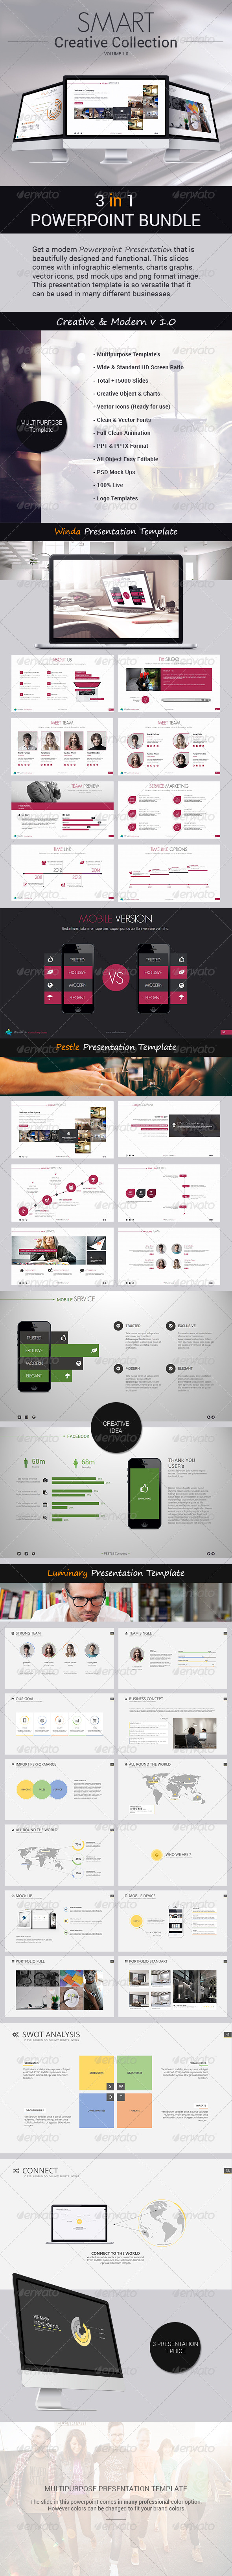 GraphicRiver SMART Bundle 3 in 1 Powerpoint Presentations 8295129